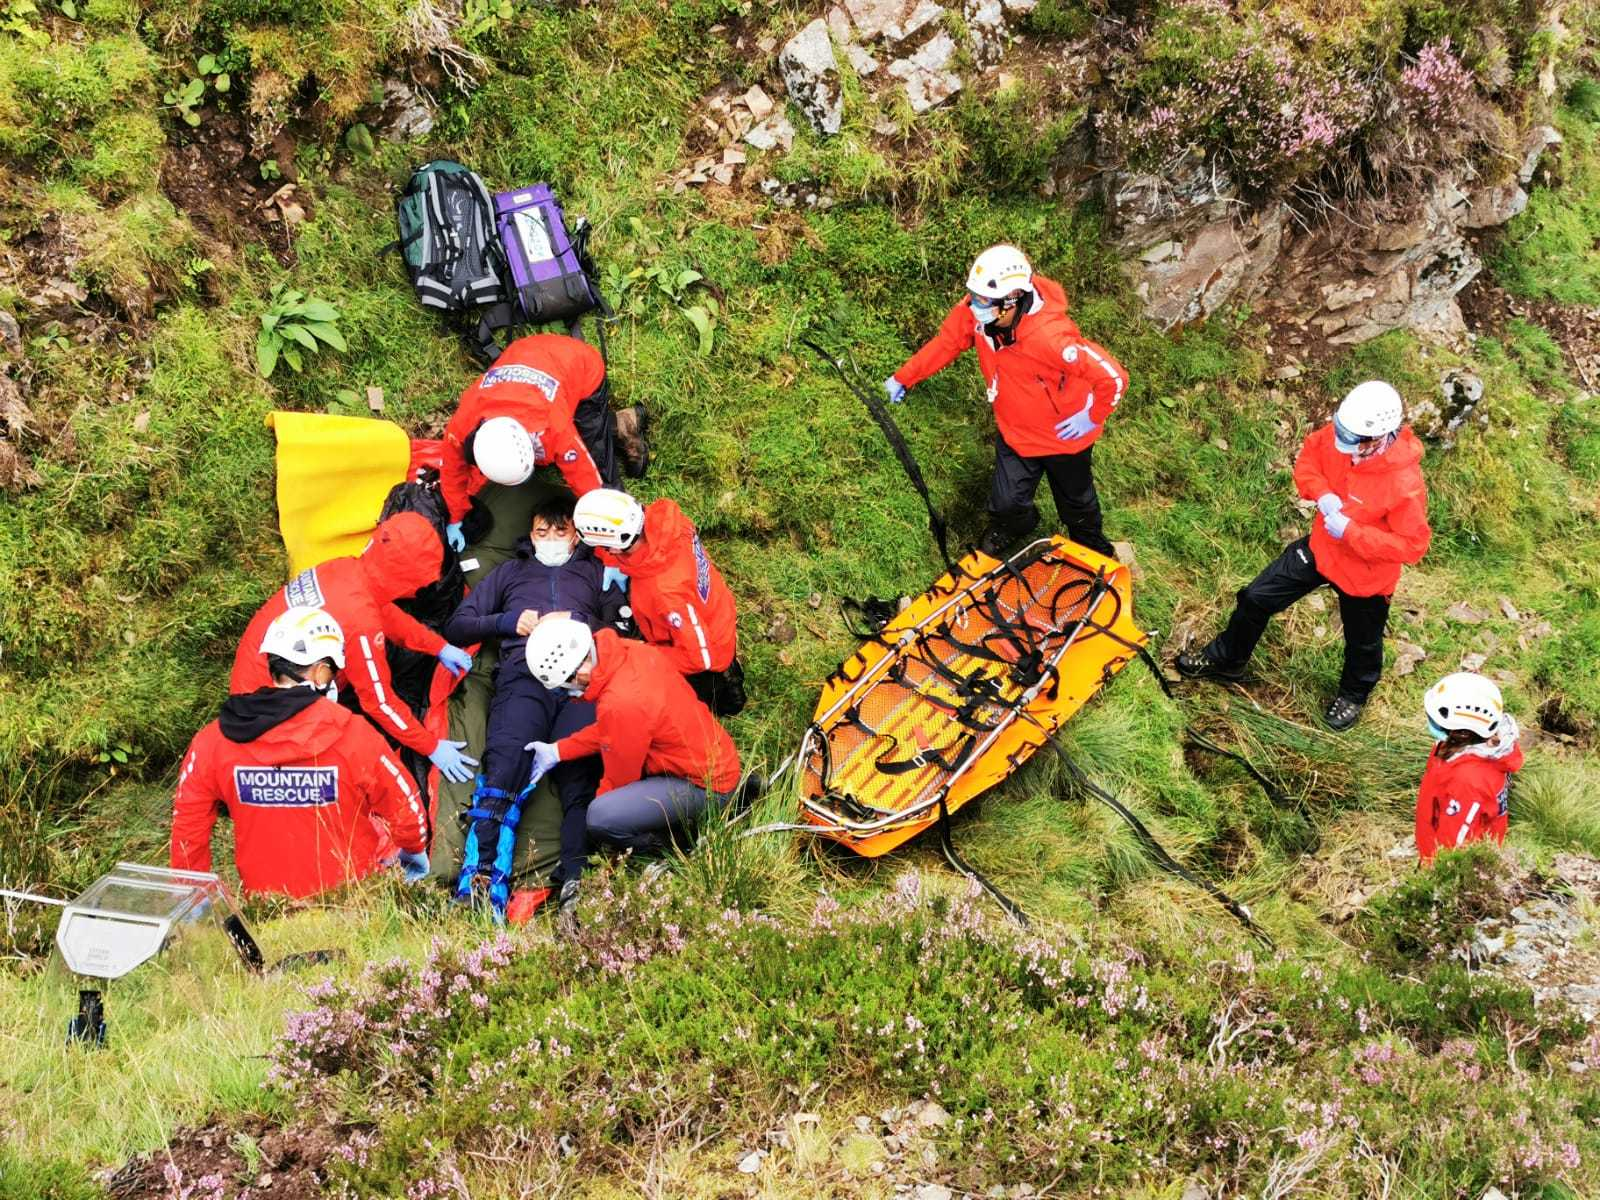 Mountain rescue volunteers working in the National Park